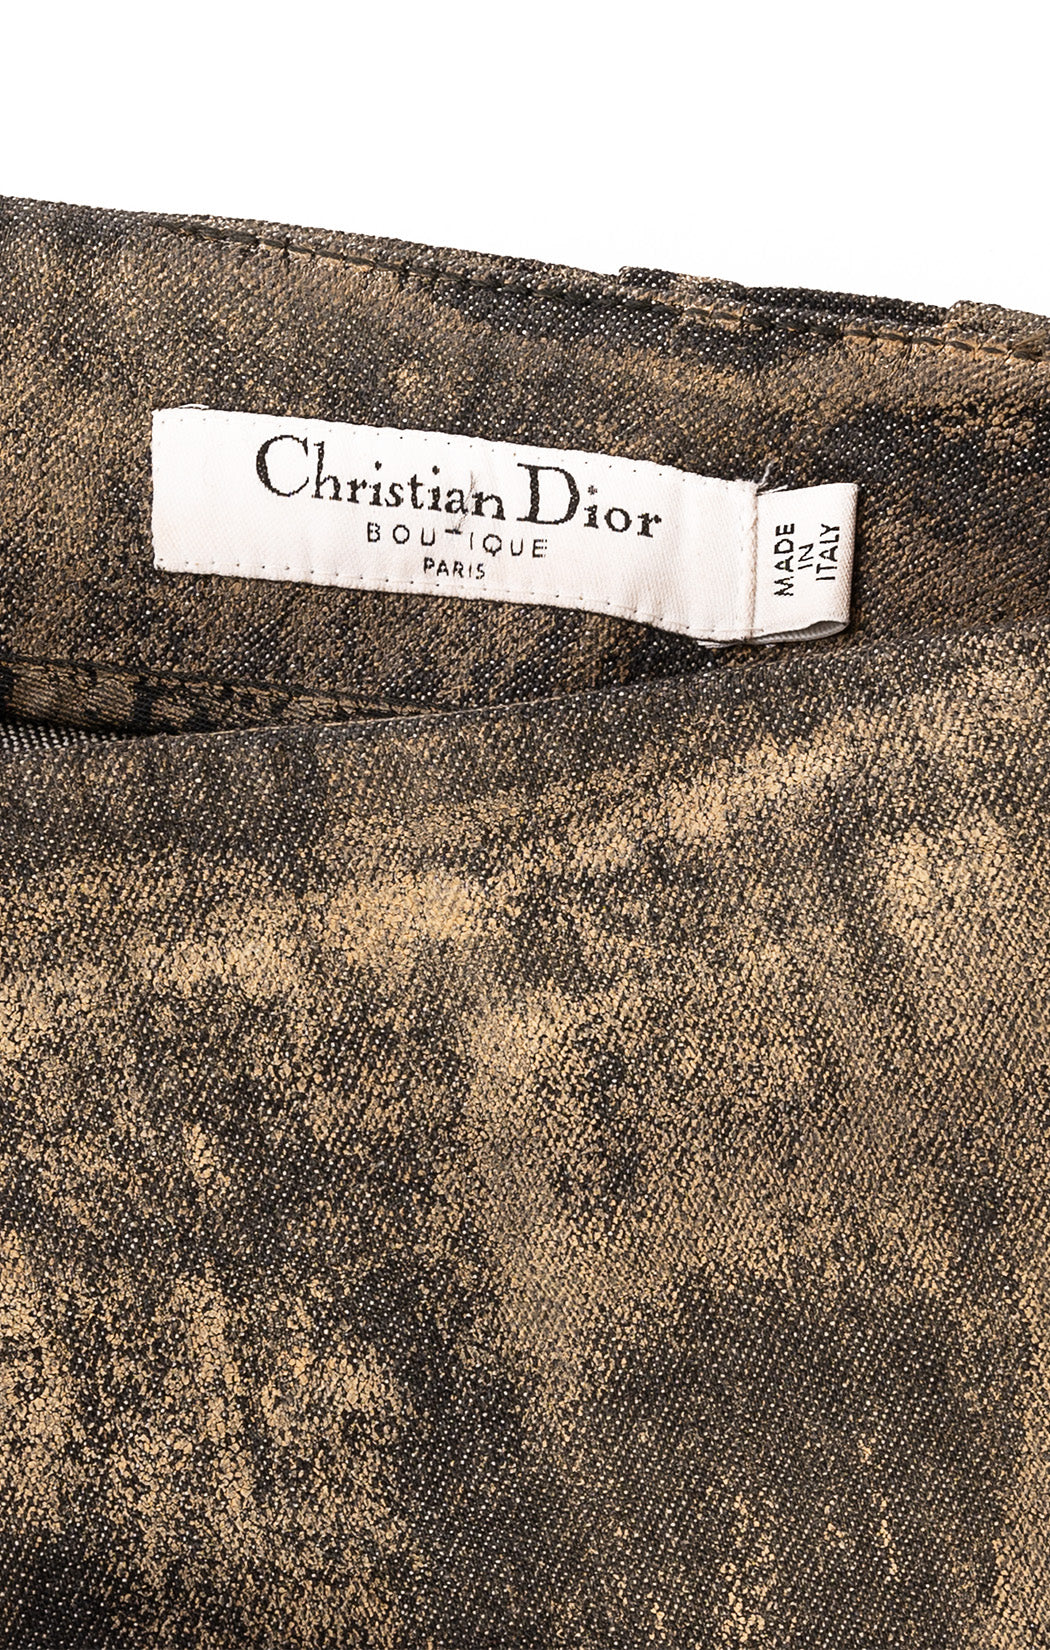 CHRISTIAN DIOR Skirt Size: 6